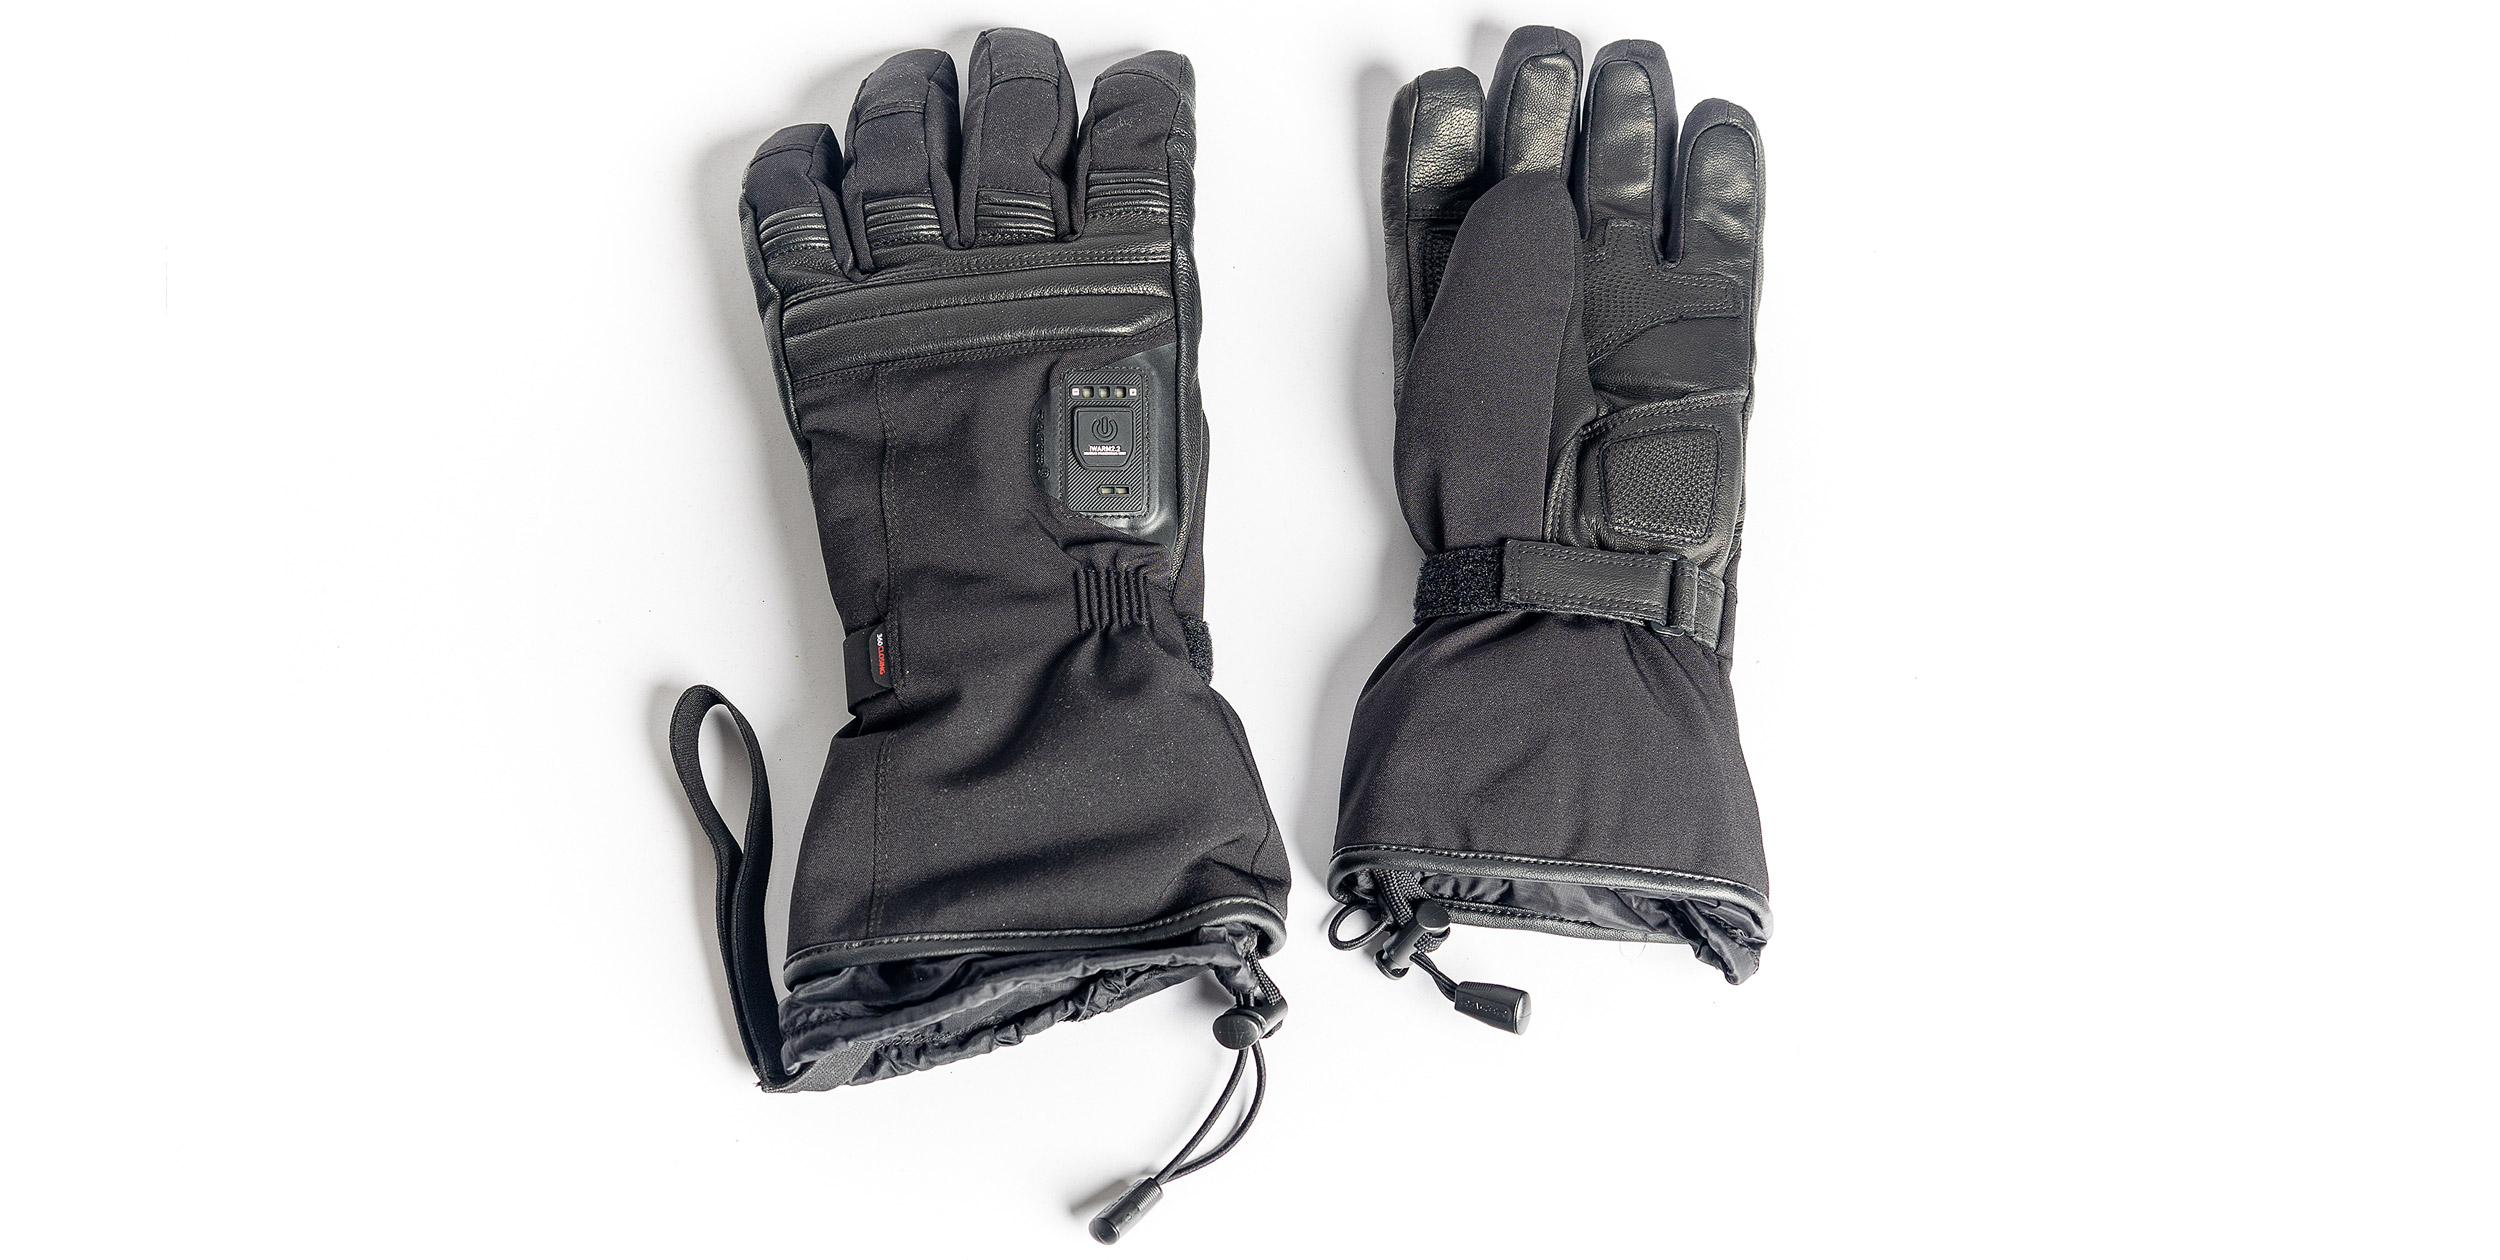 Racer Connectic 4 gloves